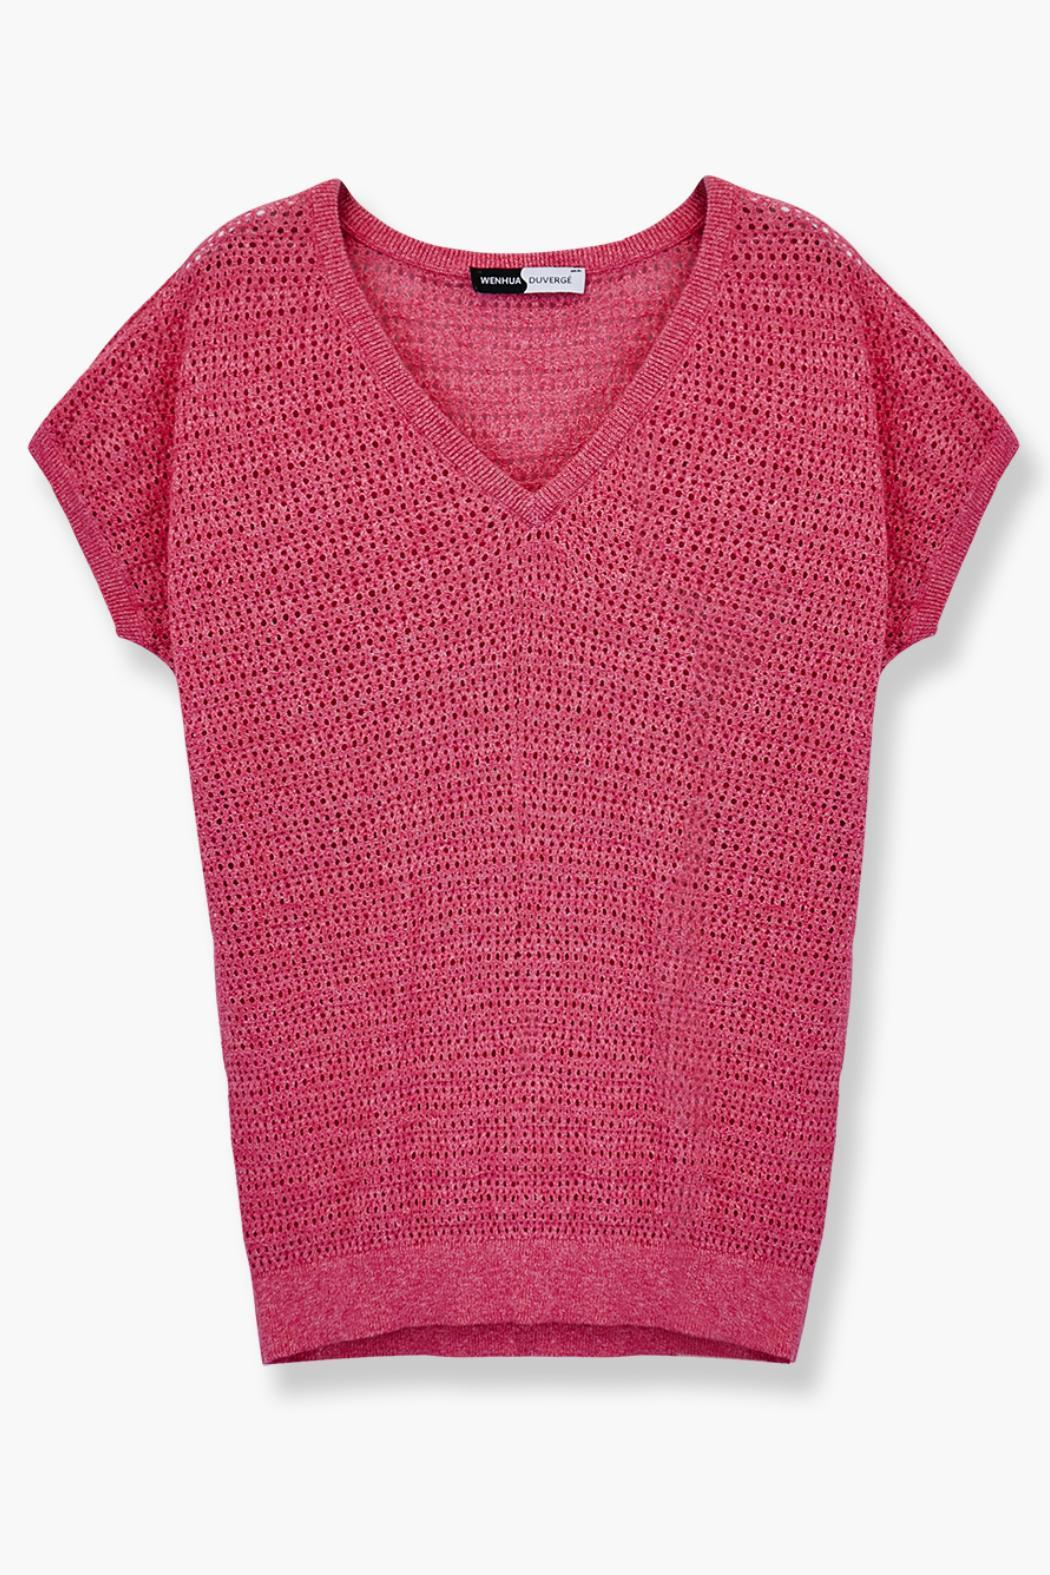 WENHUA DUVERGÉ Organic Cotton Sweater - Back Cropped Image